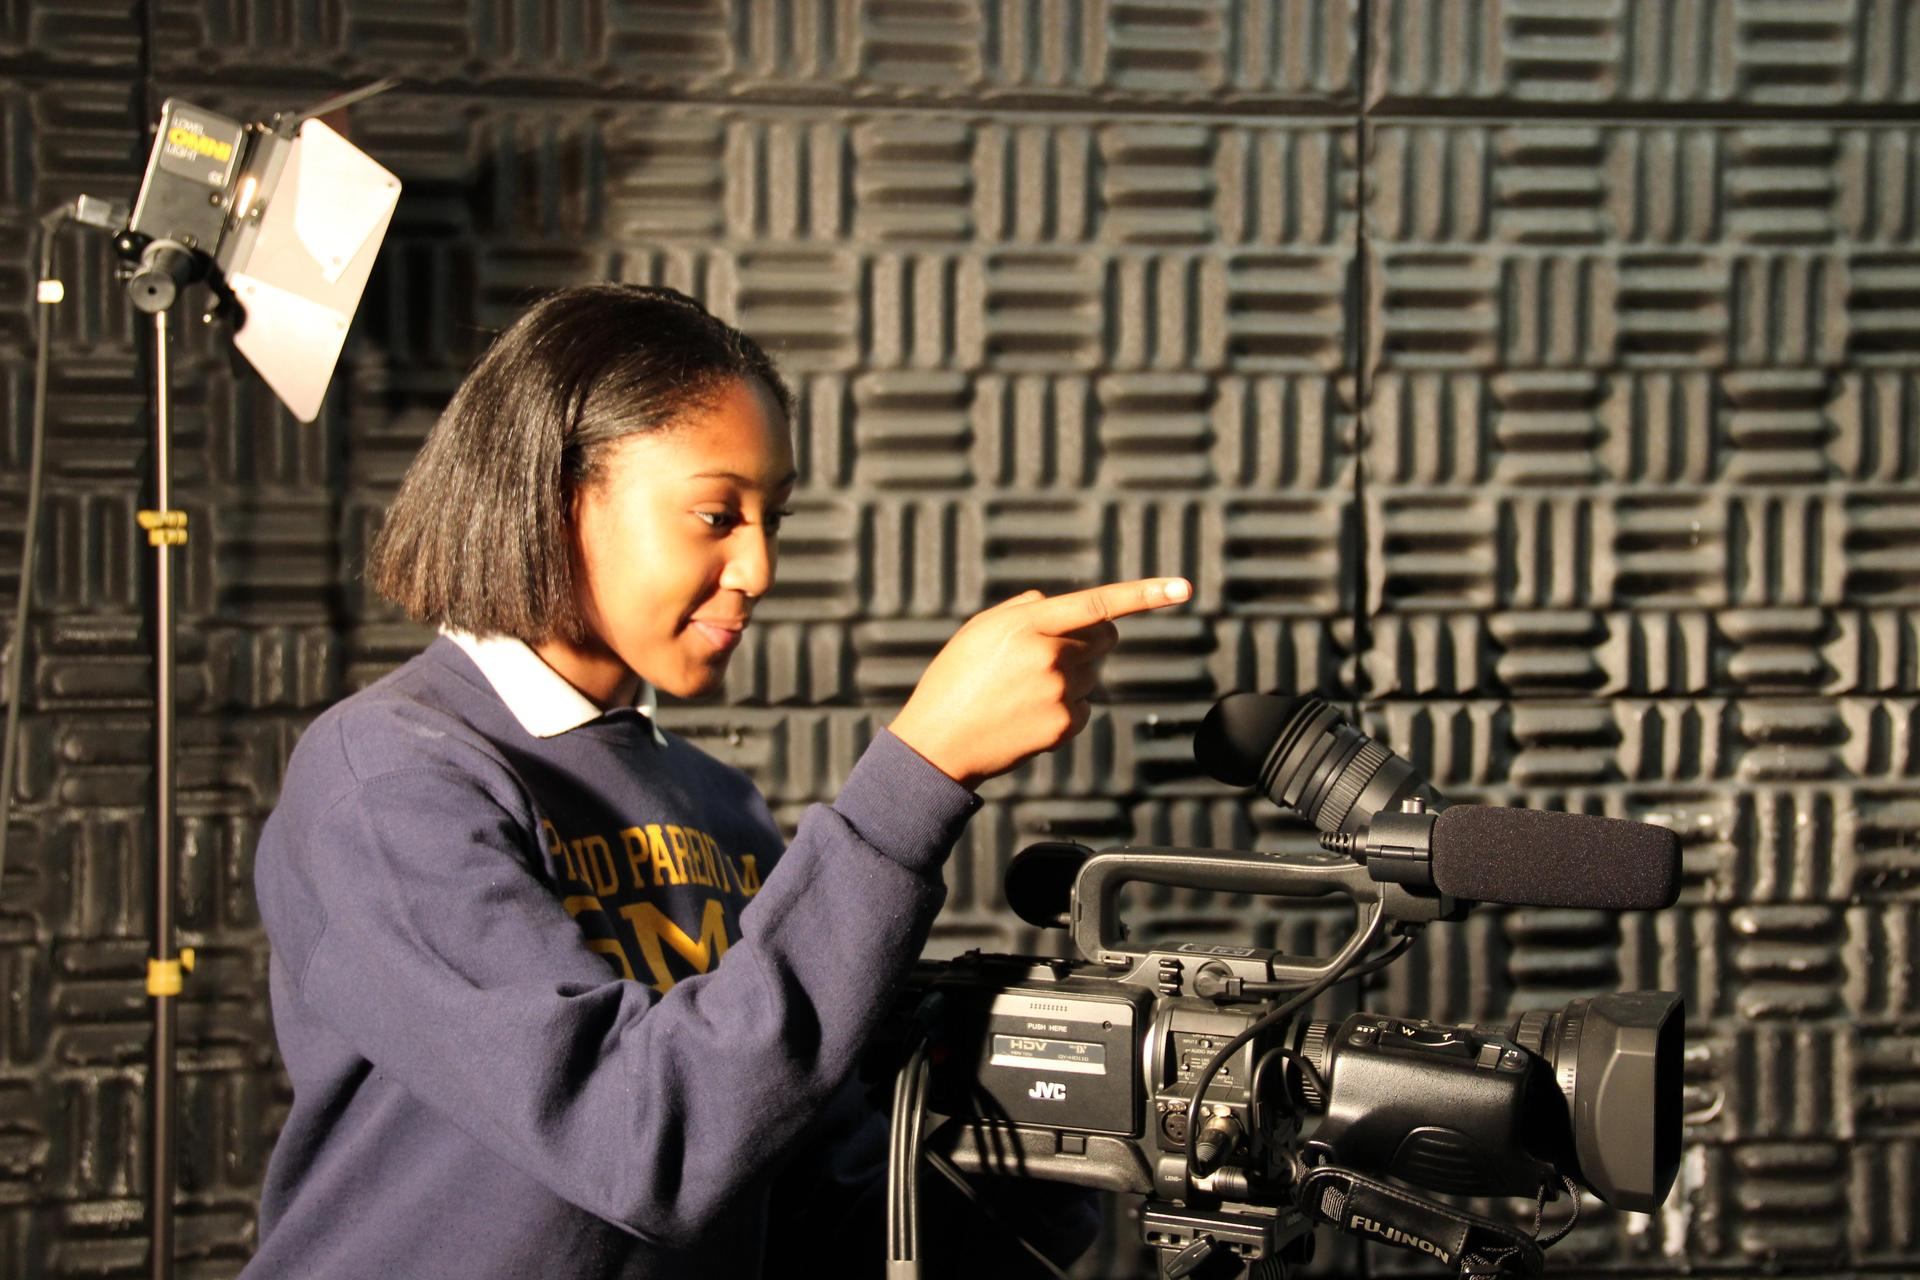 student using a professional camera